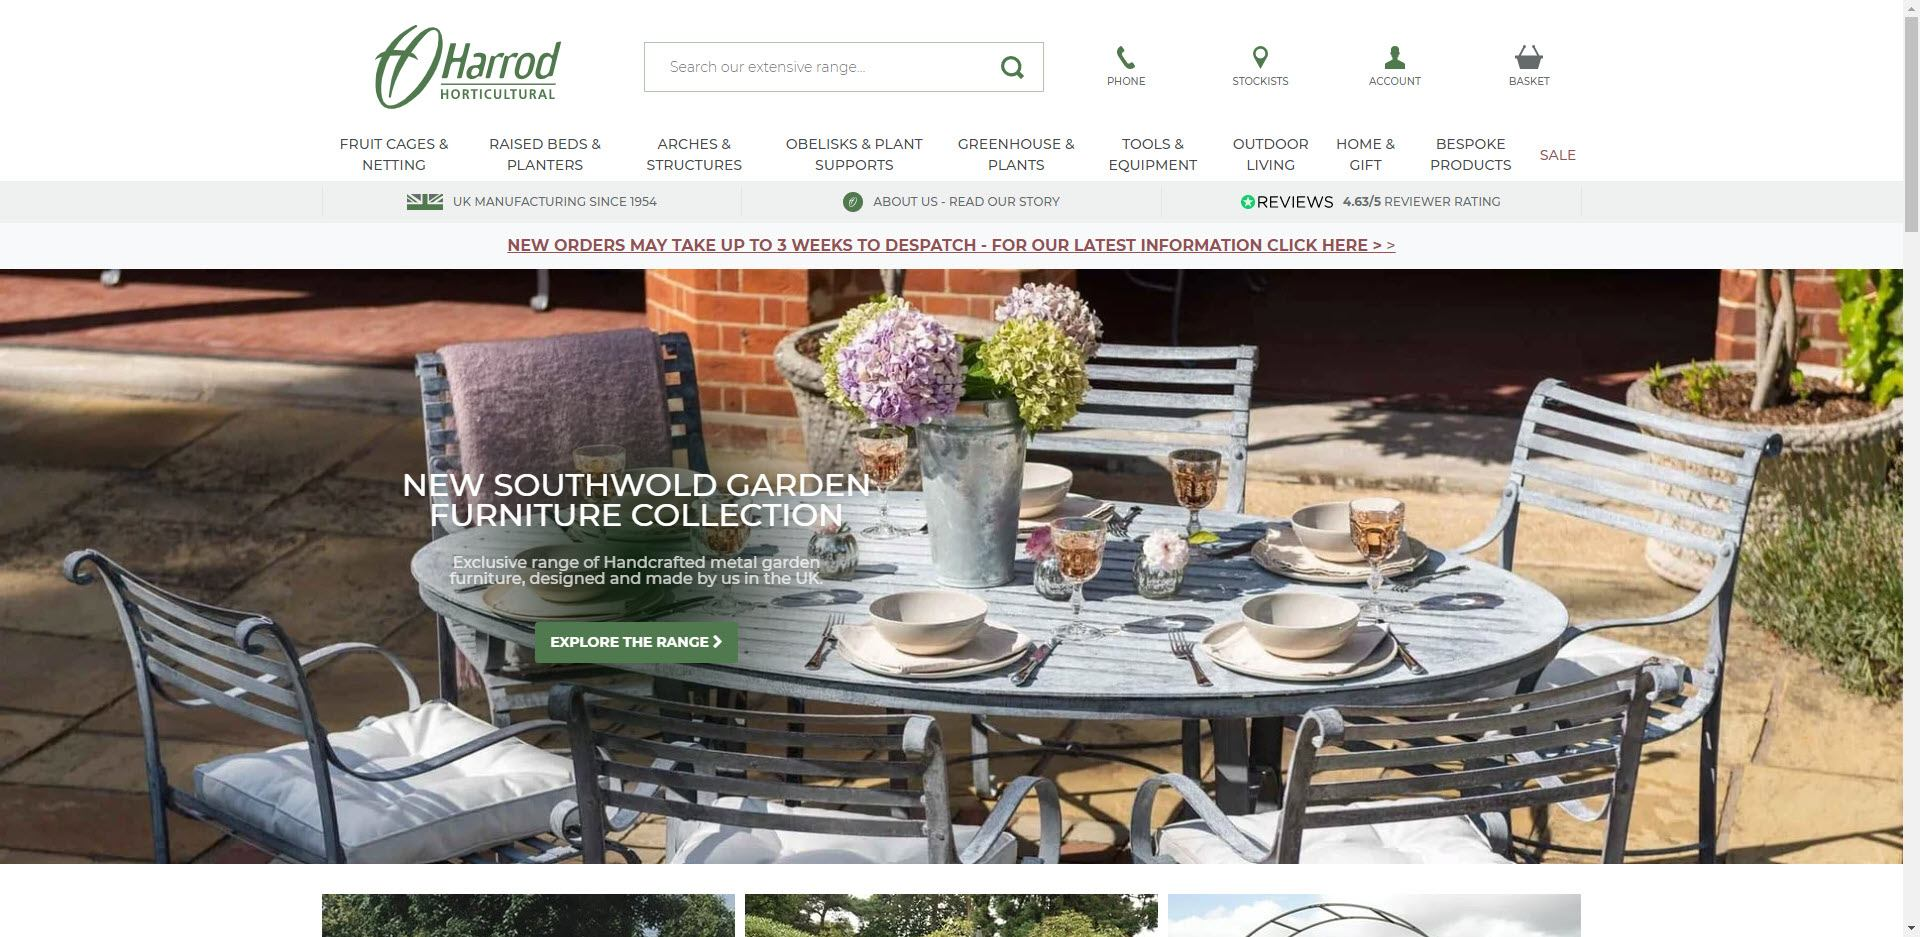 Gardening Affiliate Programs - Harrod Horticultural Home